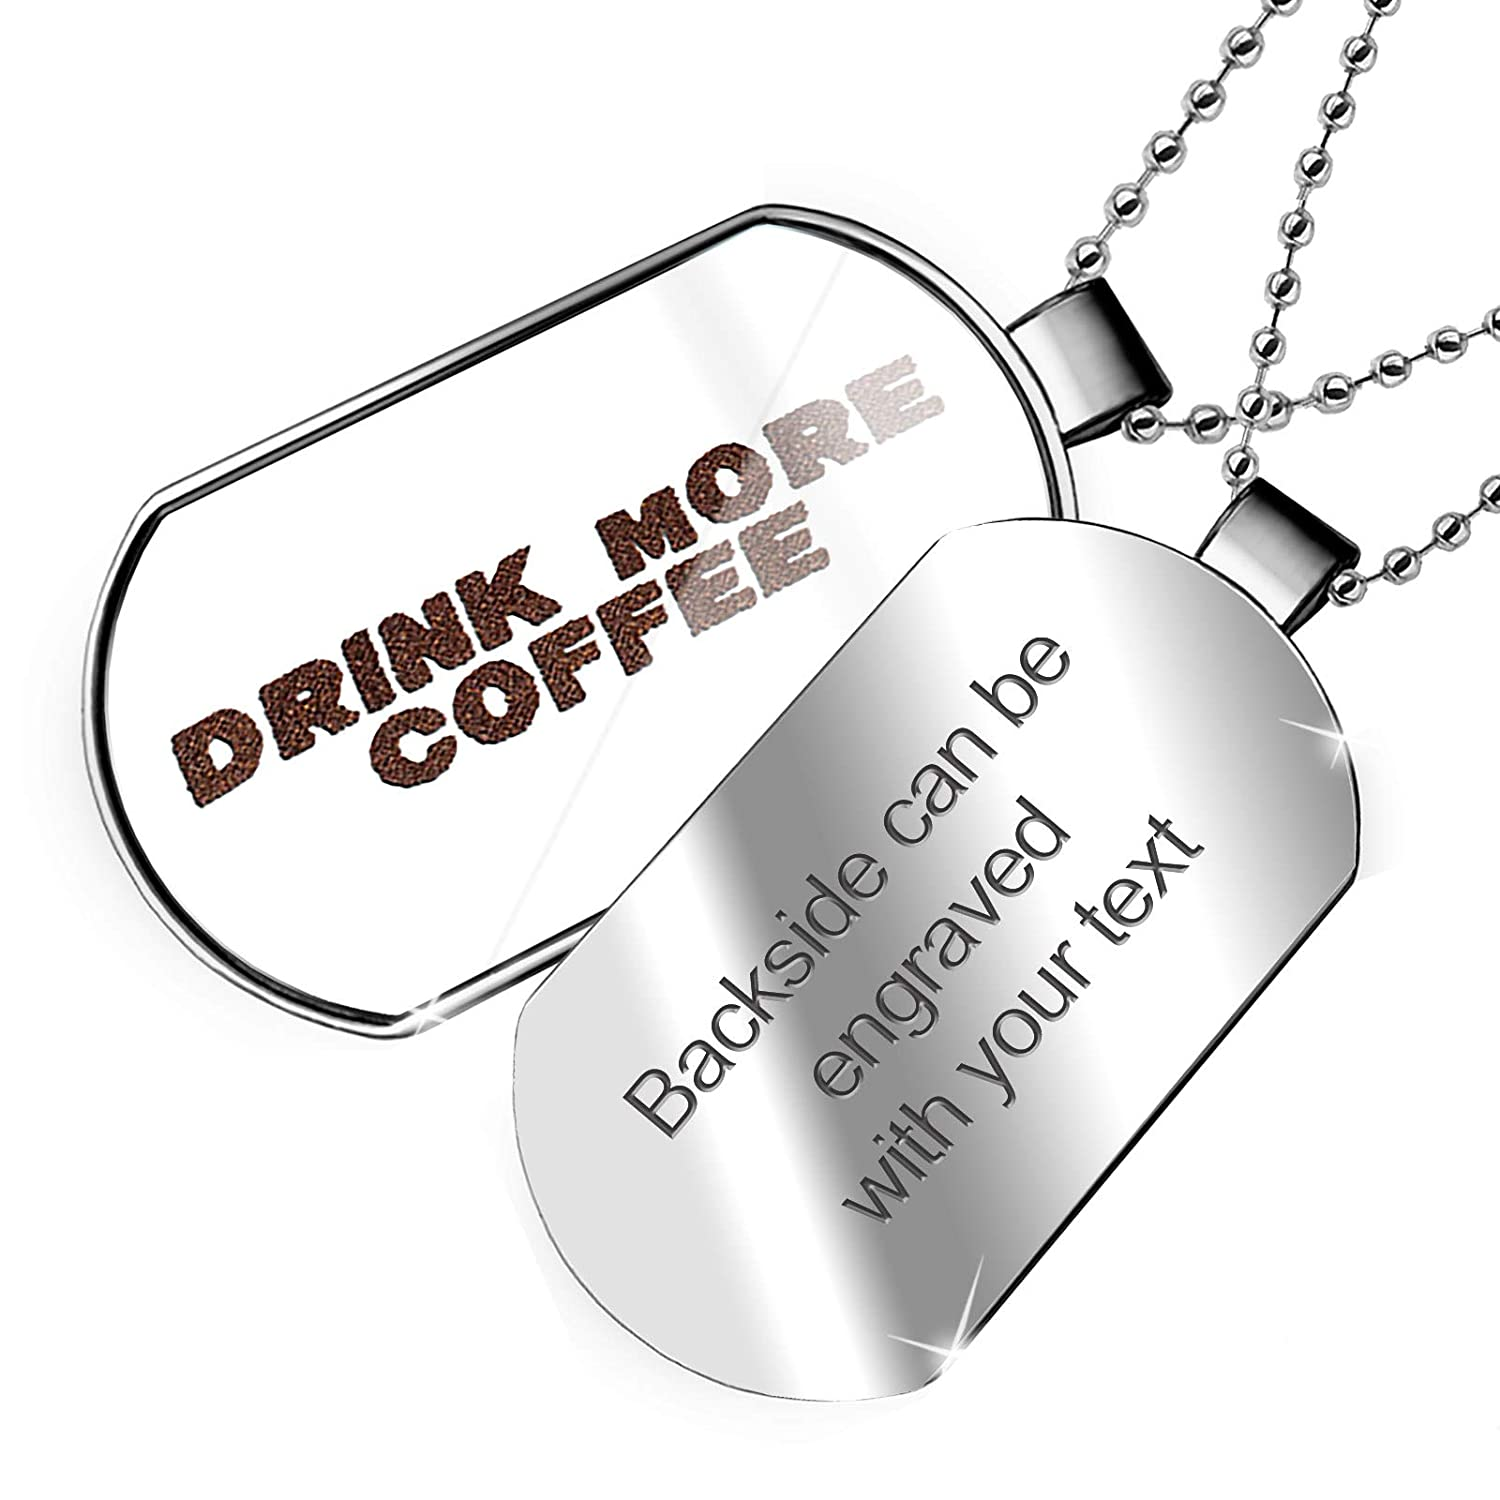 NEONBLOND Personalized Name Engraved Drink More Coffee Roasted Coffee Beans Dogtag Necklace